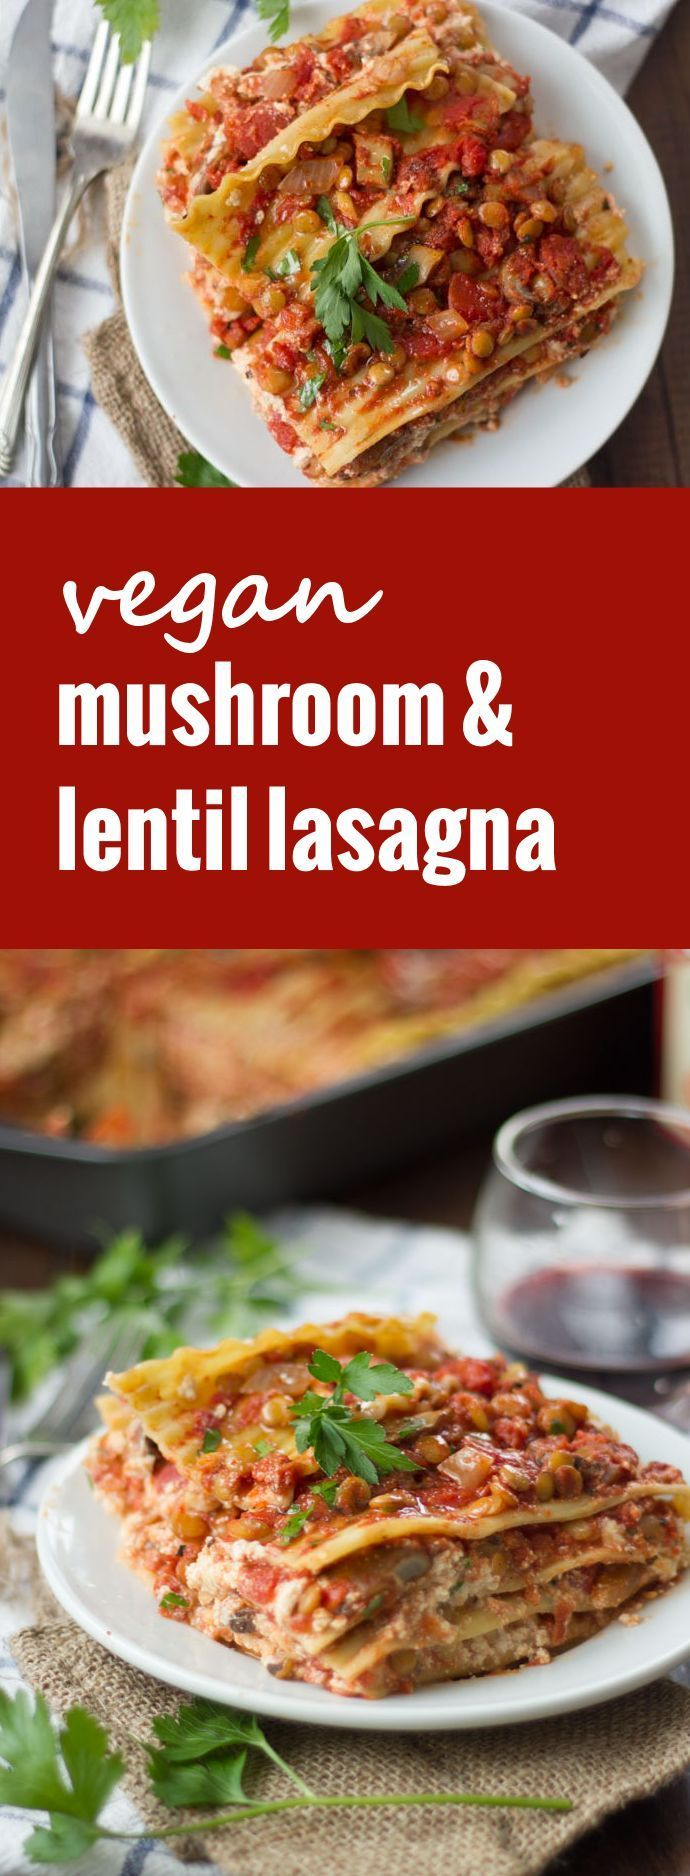 This hearty vegan lasagna is made with layers of noodles, rich cashew ricotta and hearty mushrooms and lentils simmered in spicy tomato sauce. #RedpackRecipies #RedpackTomatoes #ad